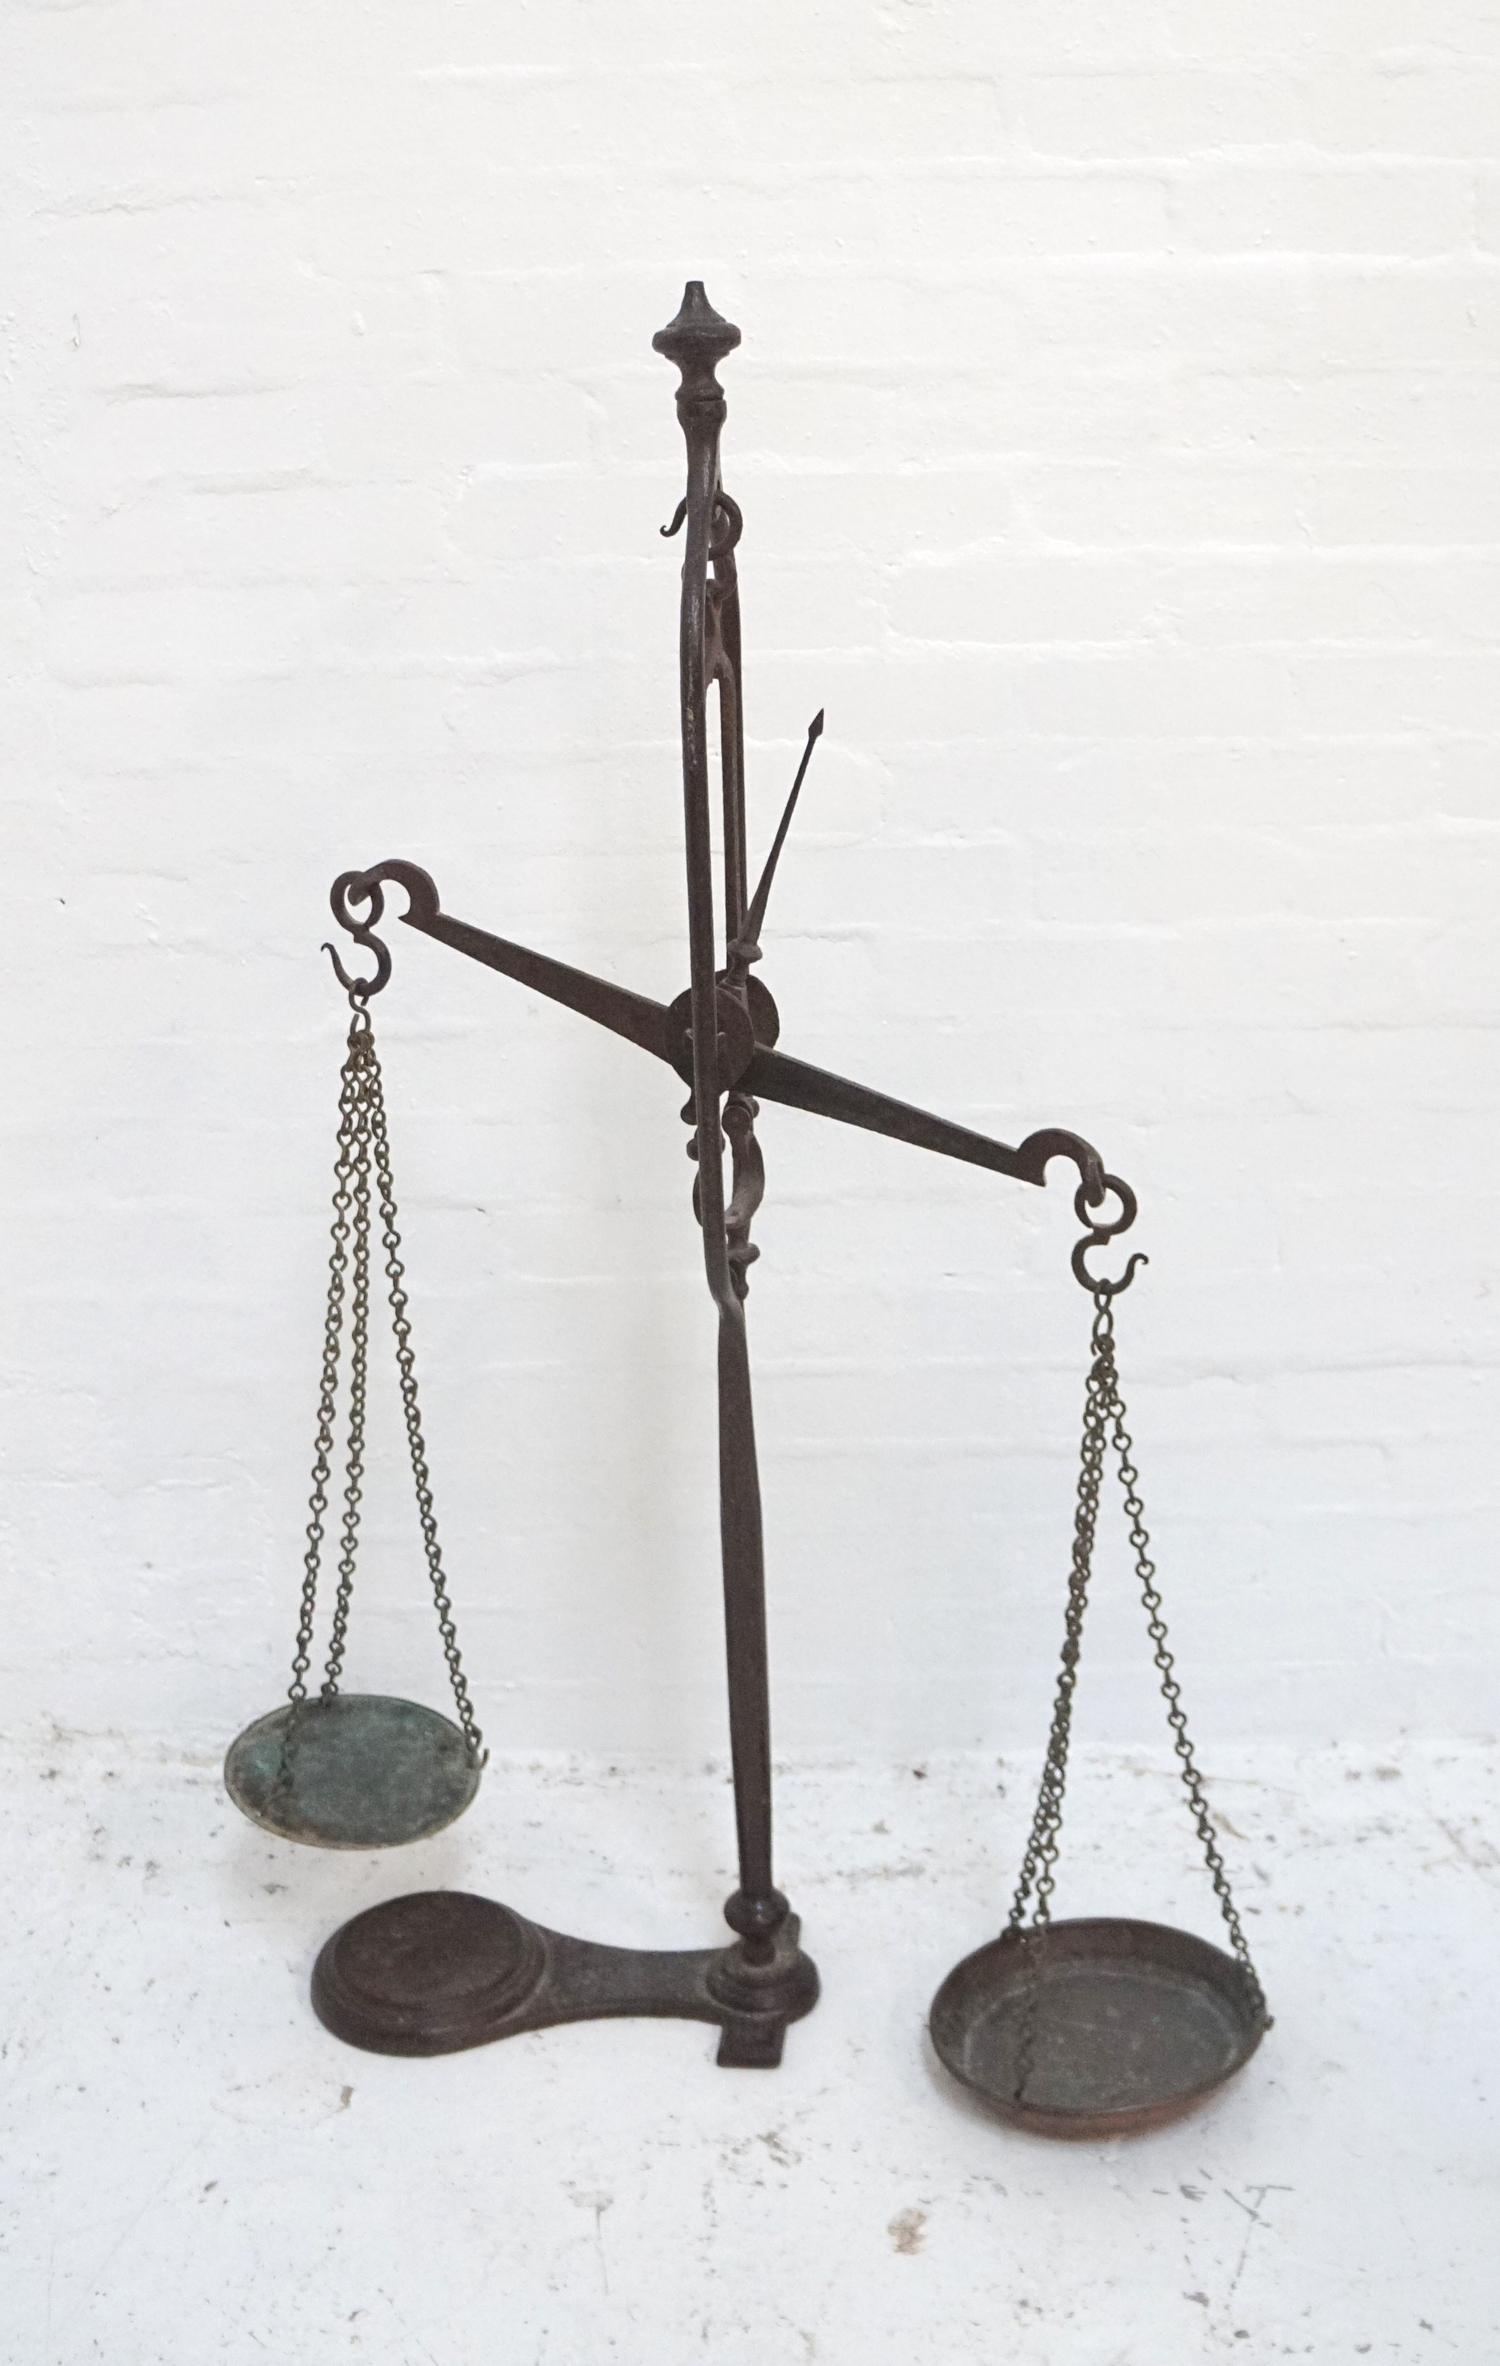 Lot 254 - SET OF VICTORIAN CAST IRON SHOP SCALES the central balance arm with two chain link weighing bowls,